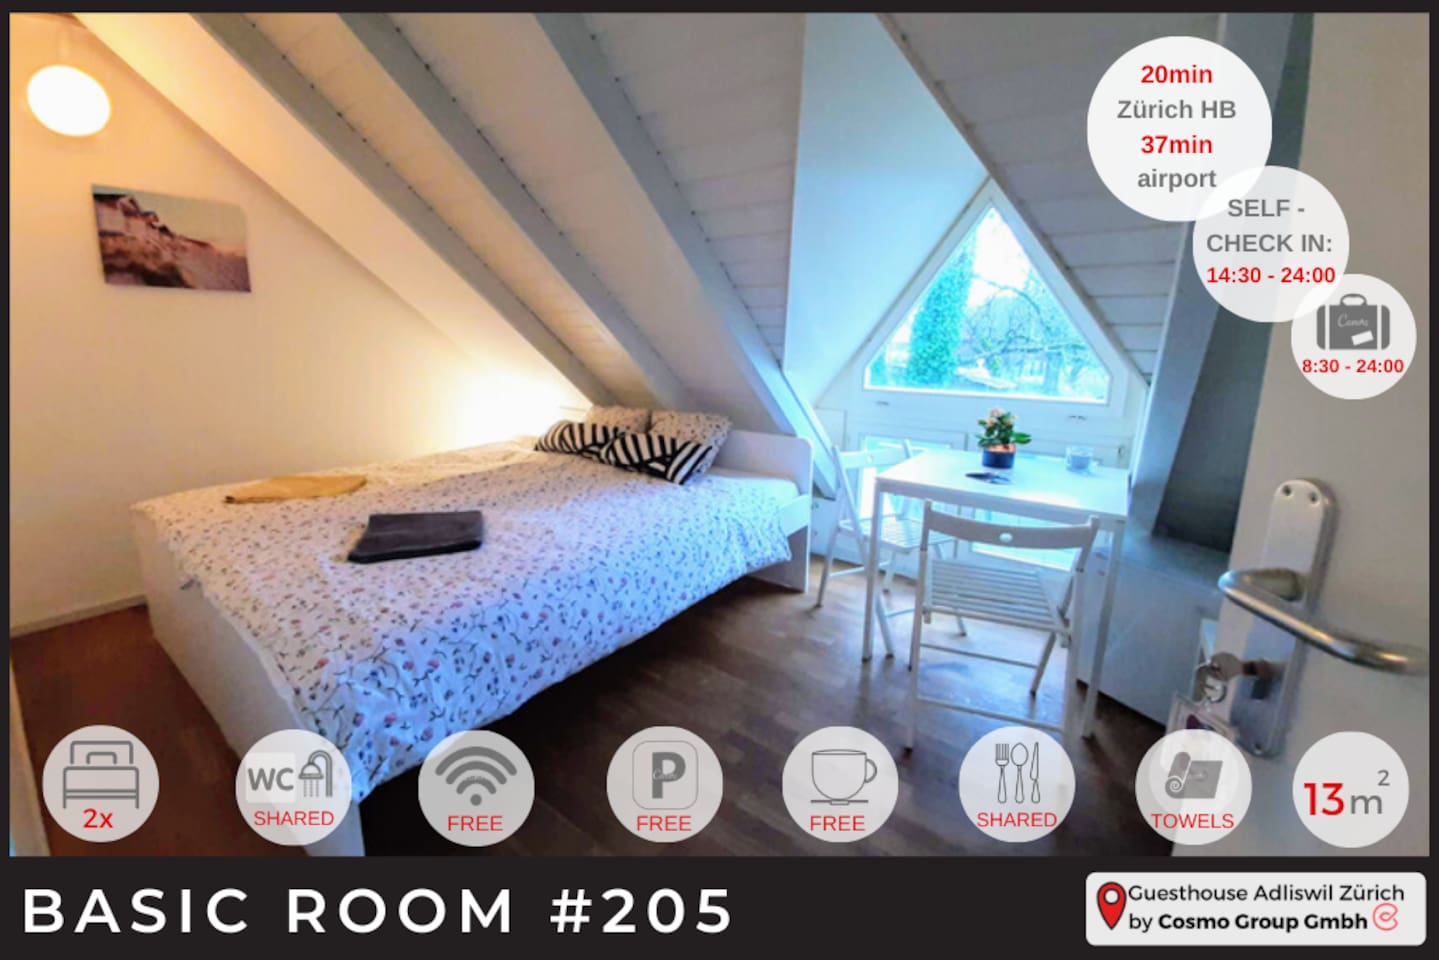 One of our Attic rooms. Room 205. Now, room 205 is on 2 floors.   If you are not into walking the stairs it will not be your perfect match. But it's a lovely room with nice natural light.  Perfect match for guest that are planning to stay 2- 4 nights